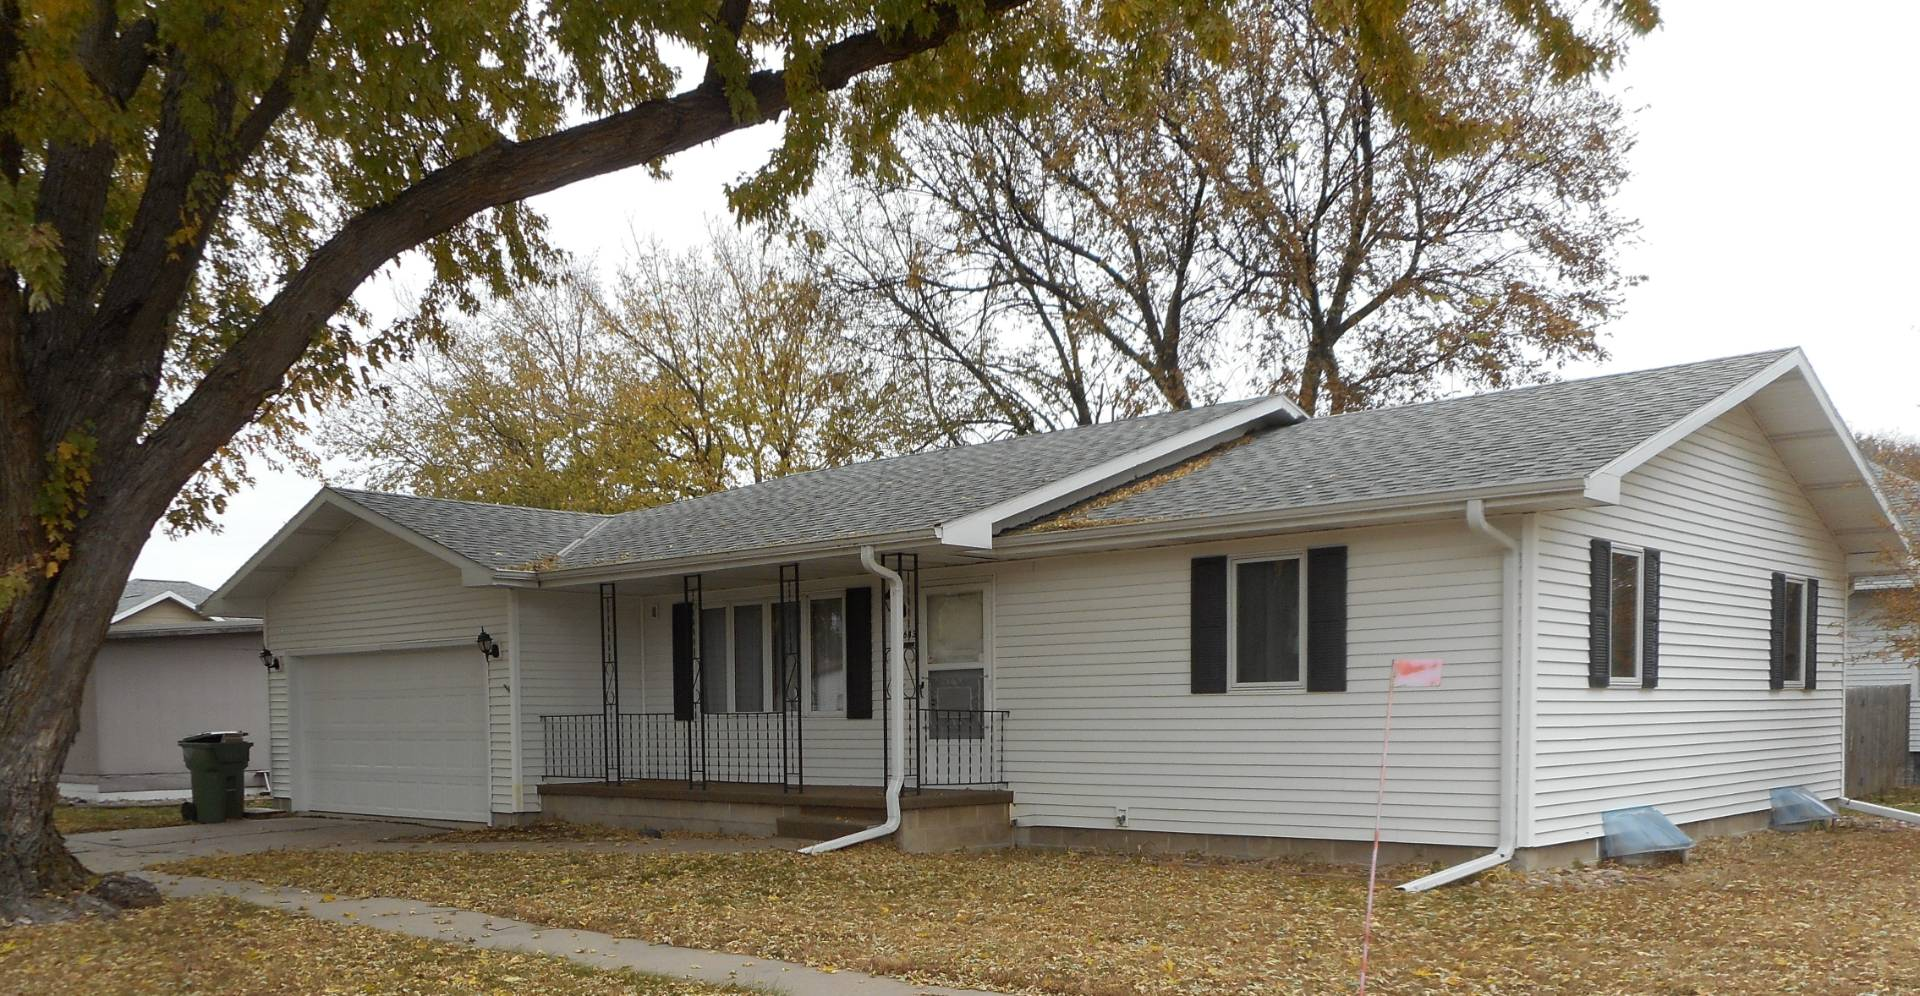 643 n 4th street hampton ne 68843 sold mystatemls listing 10678353 my state mls